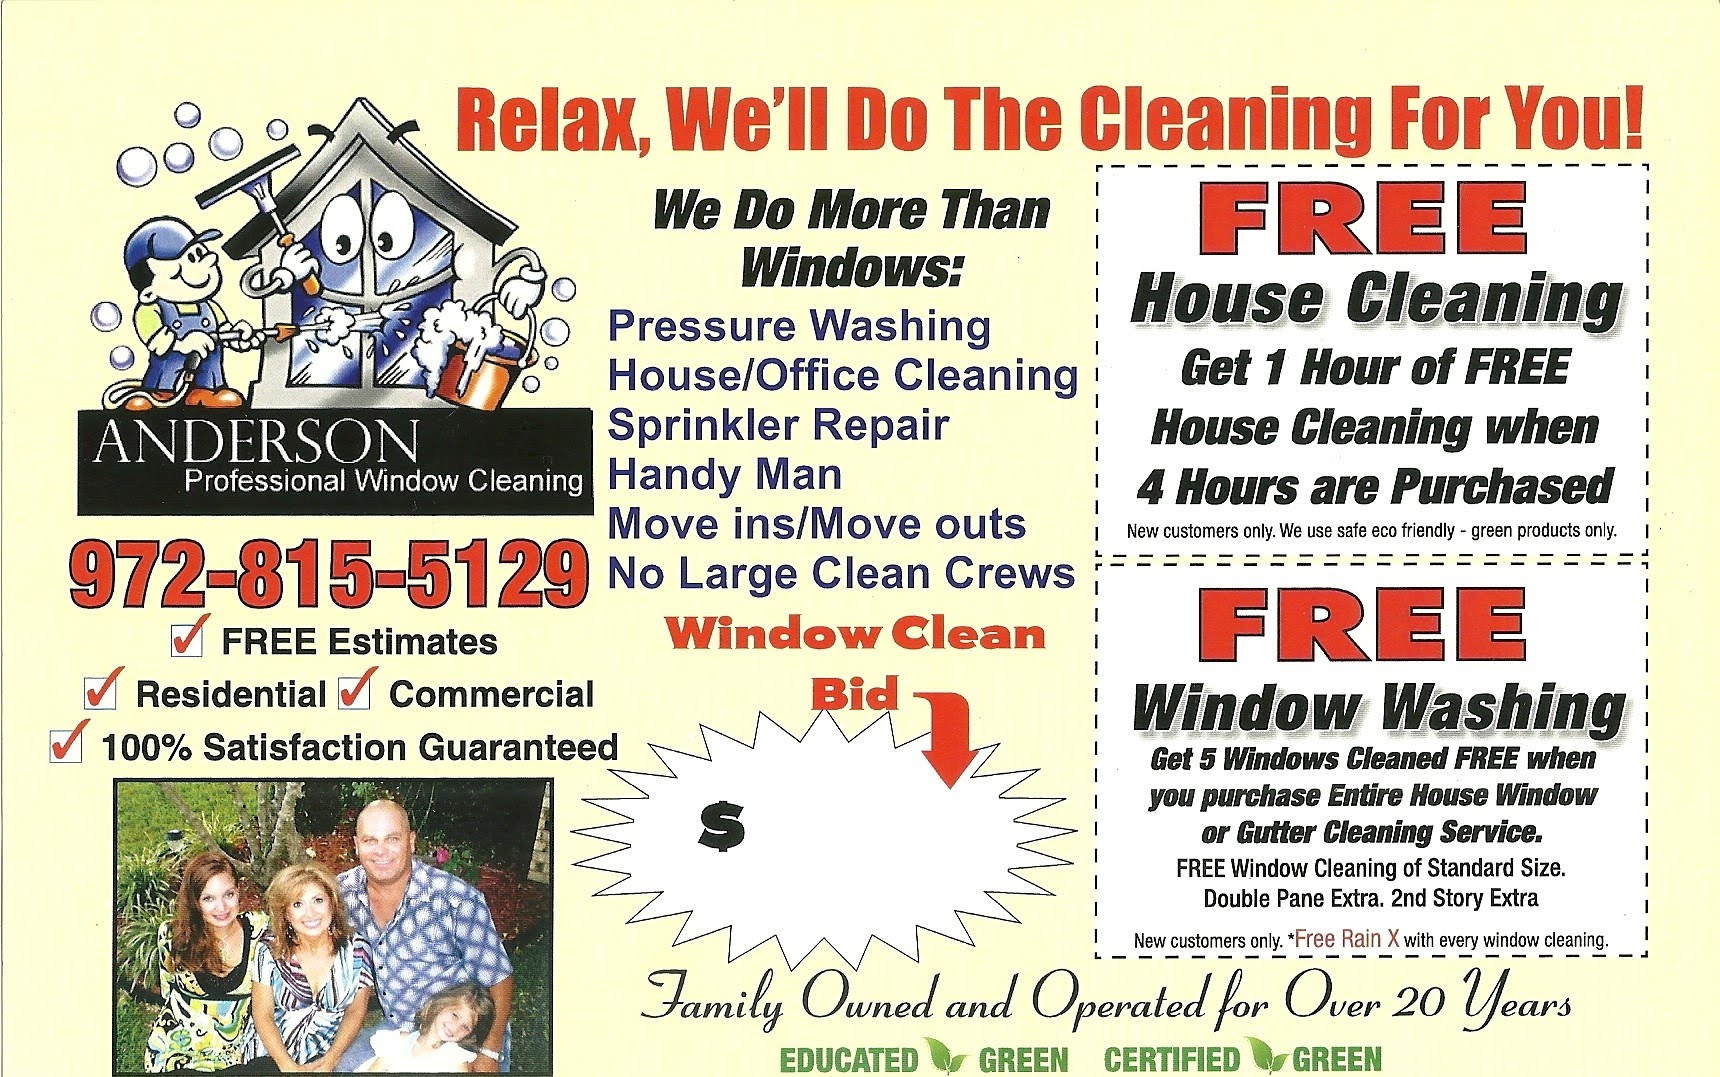 coupon anderson professional window cleaning and handyman coupon flyer